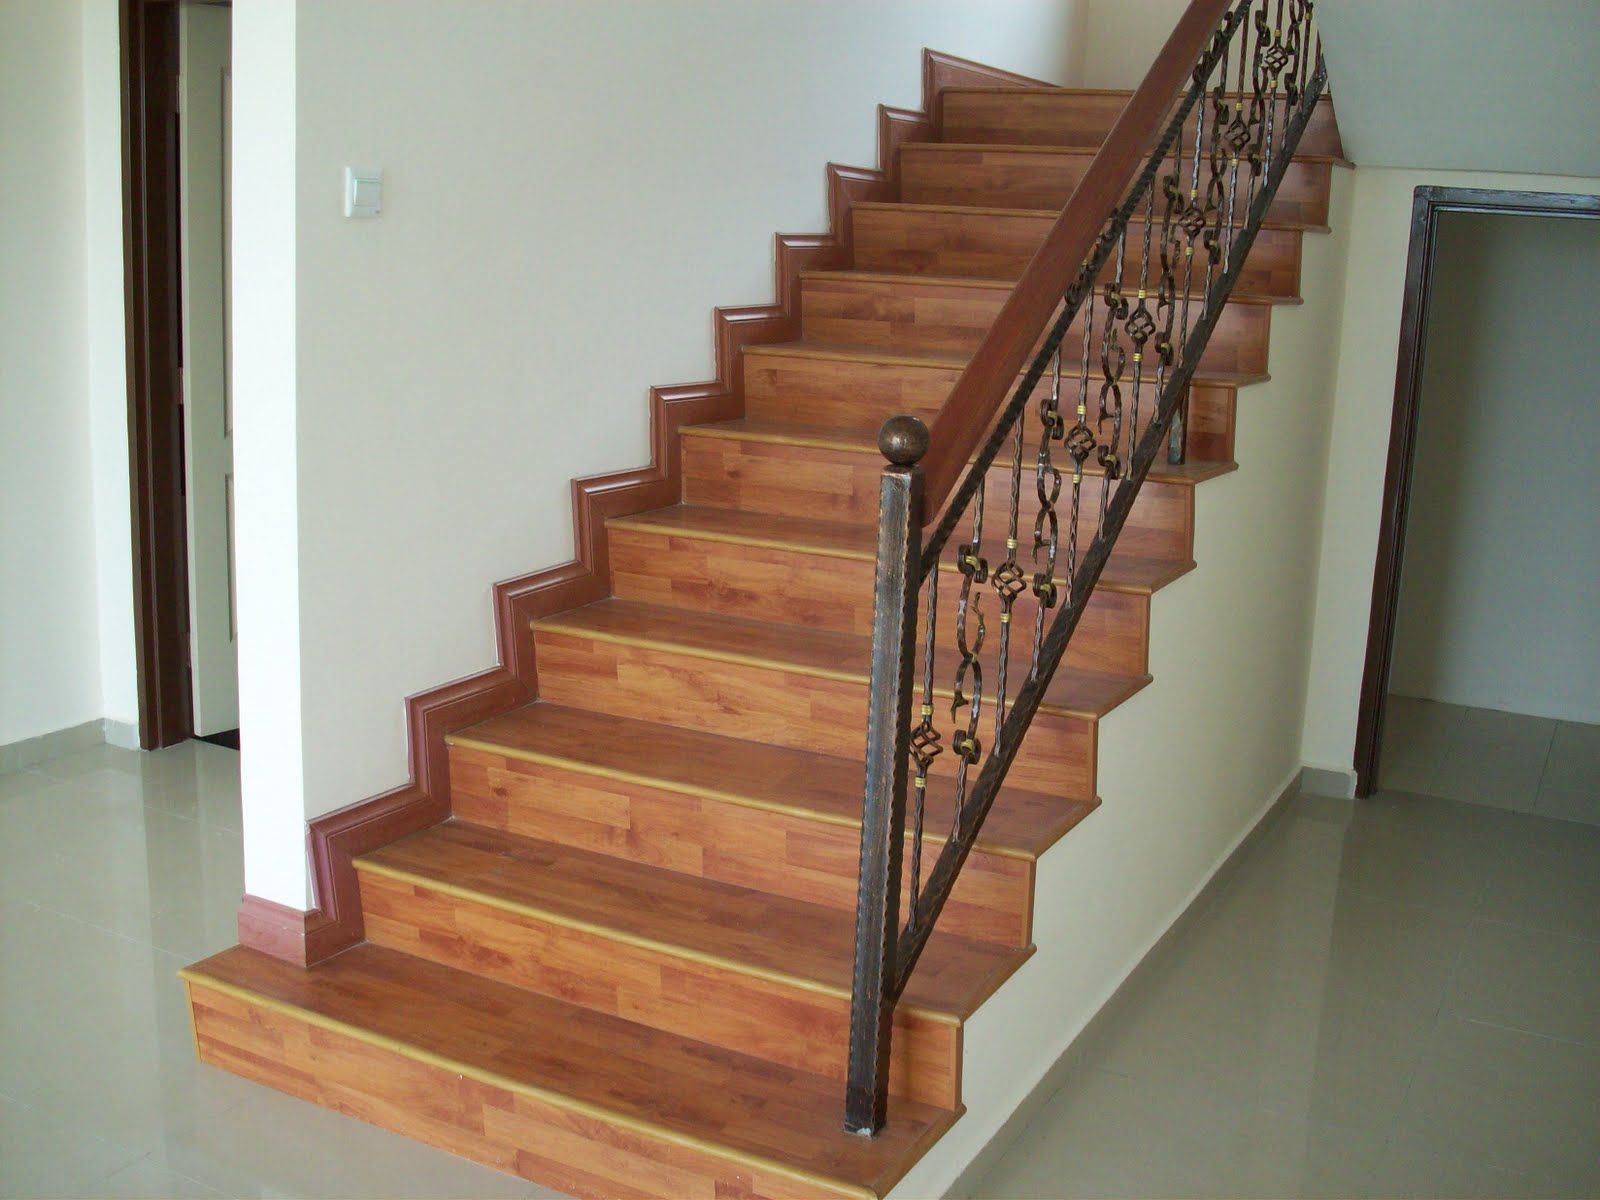 Laminate Flooring On Stairs, Laminate Stairs